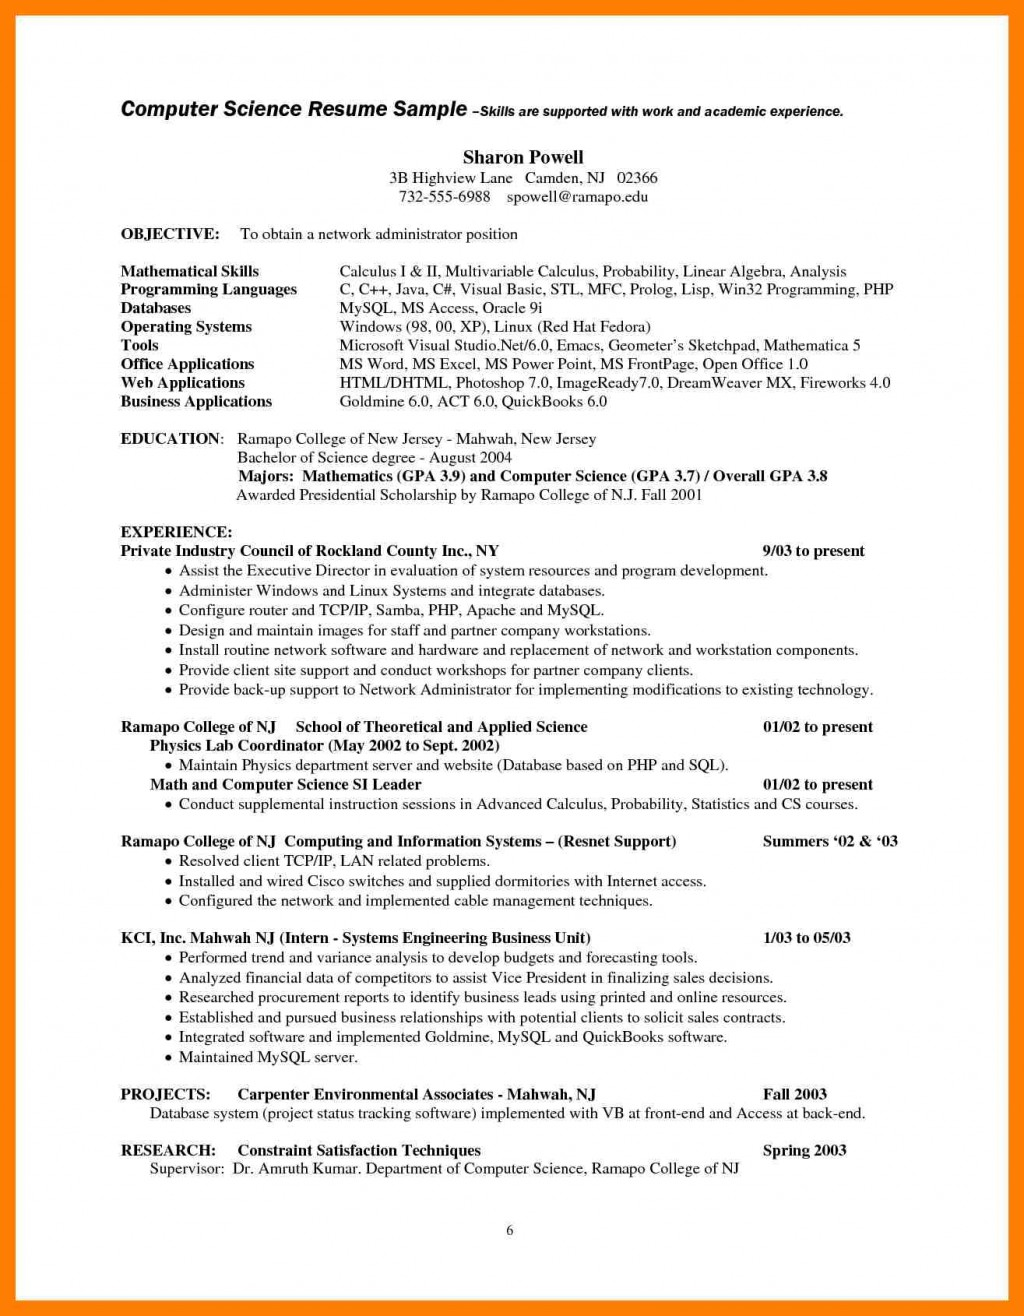 009 Computer Science Research Paper Topics Scientist Resume Examples Charming Ideas Sample Staggering 2017 Large